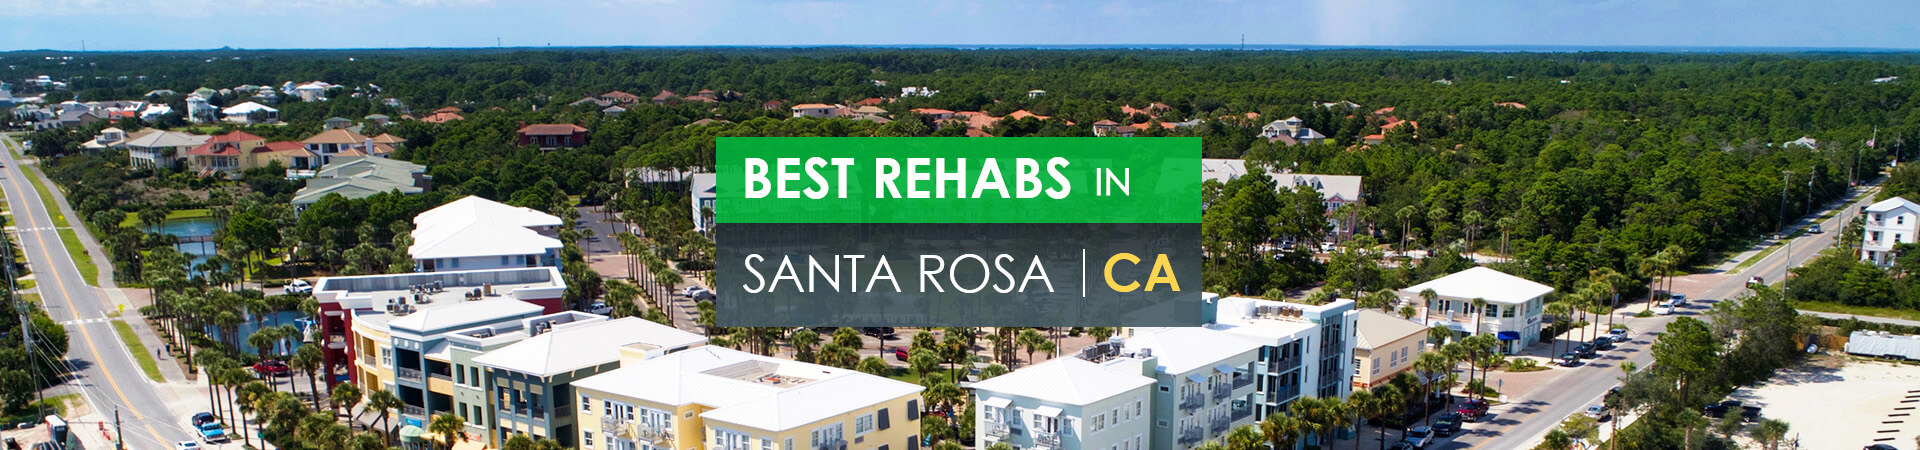 Best rehabs in Santa Rosa, CA